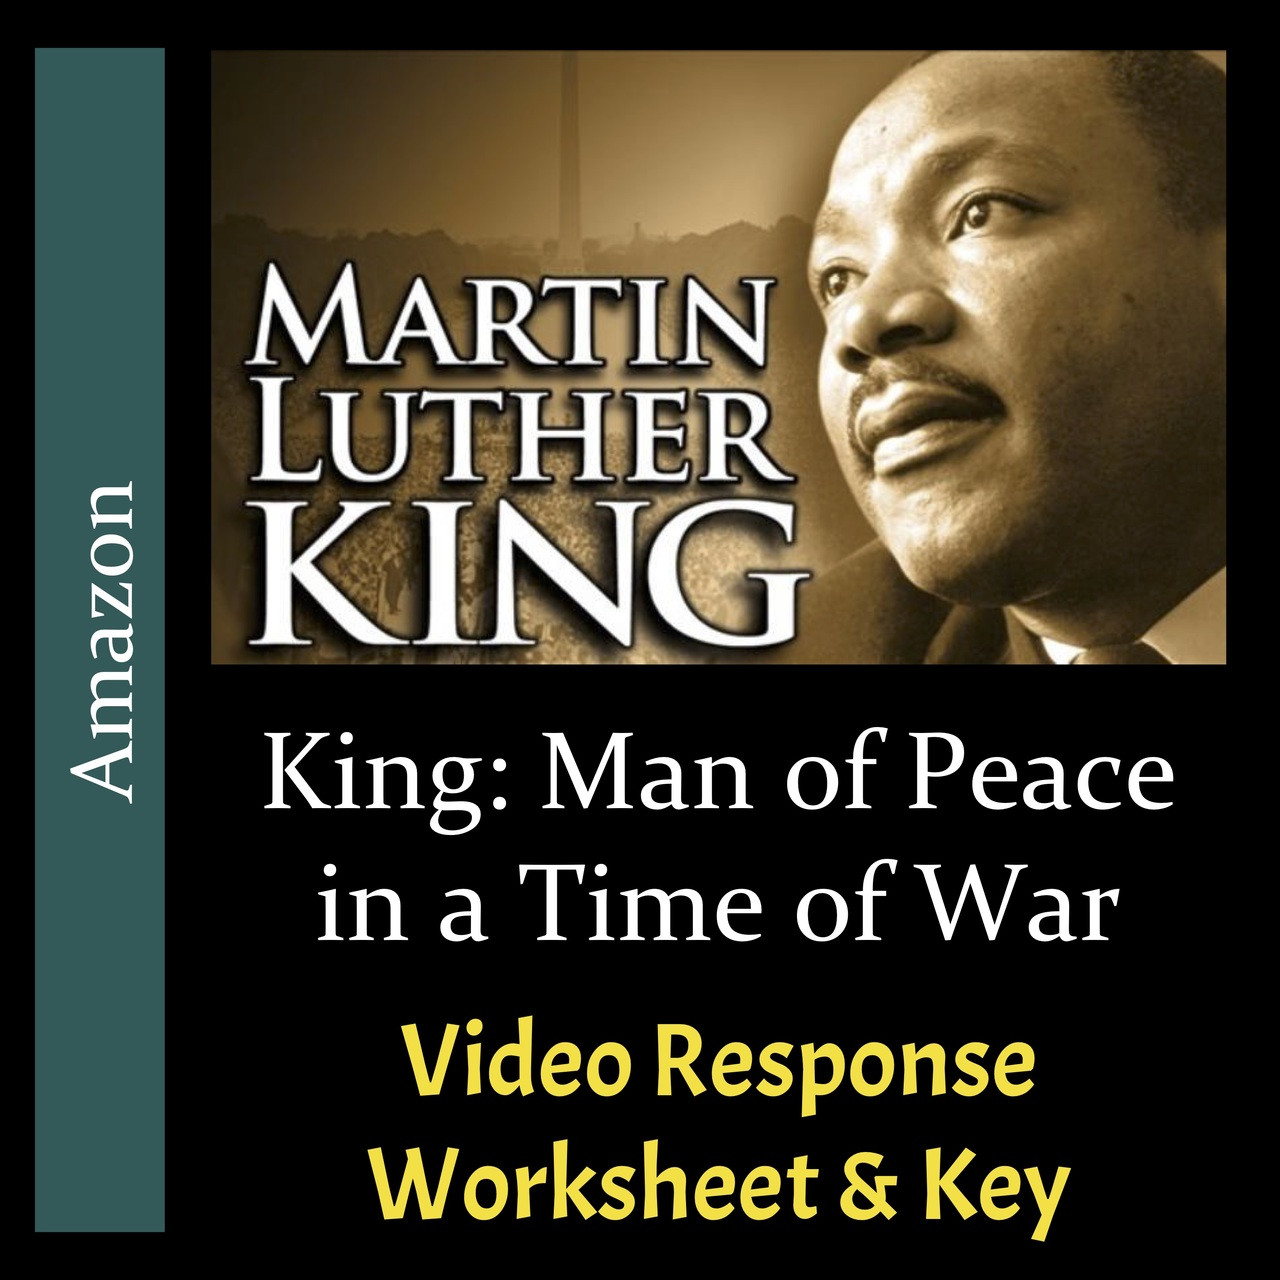 King: Man of Peace in a Time of War - Video Response Worksheet & Key (Editable)